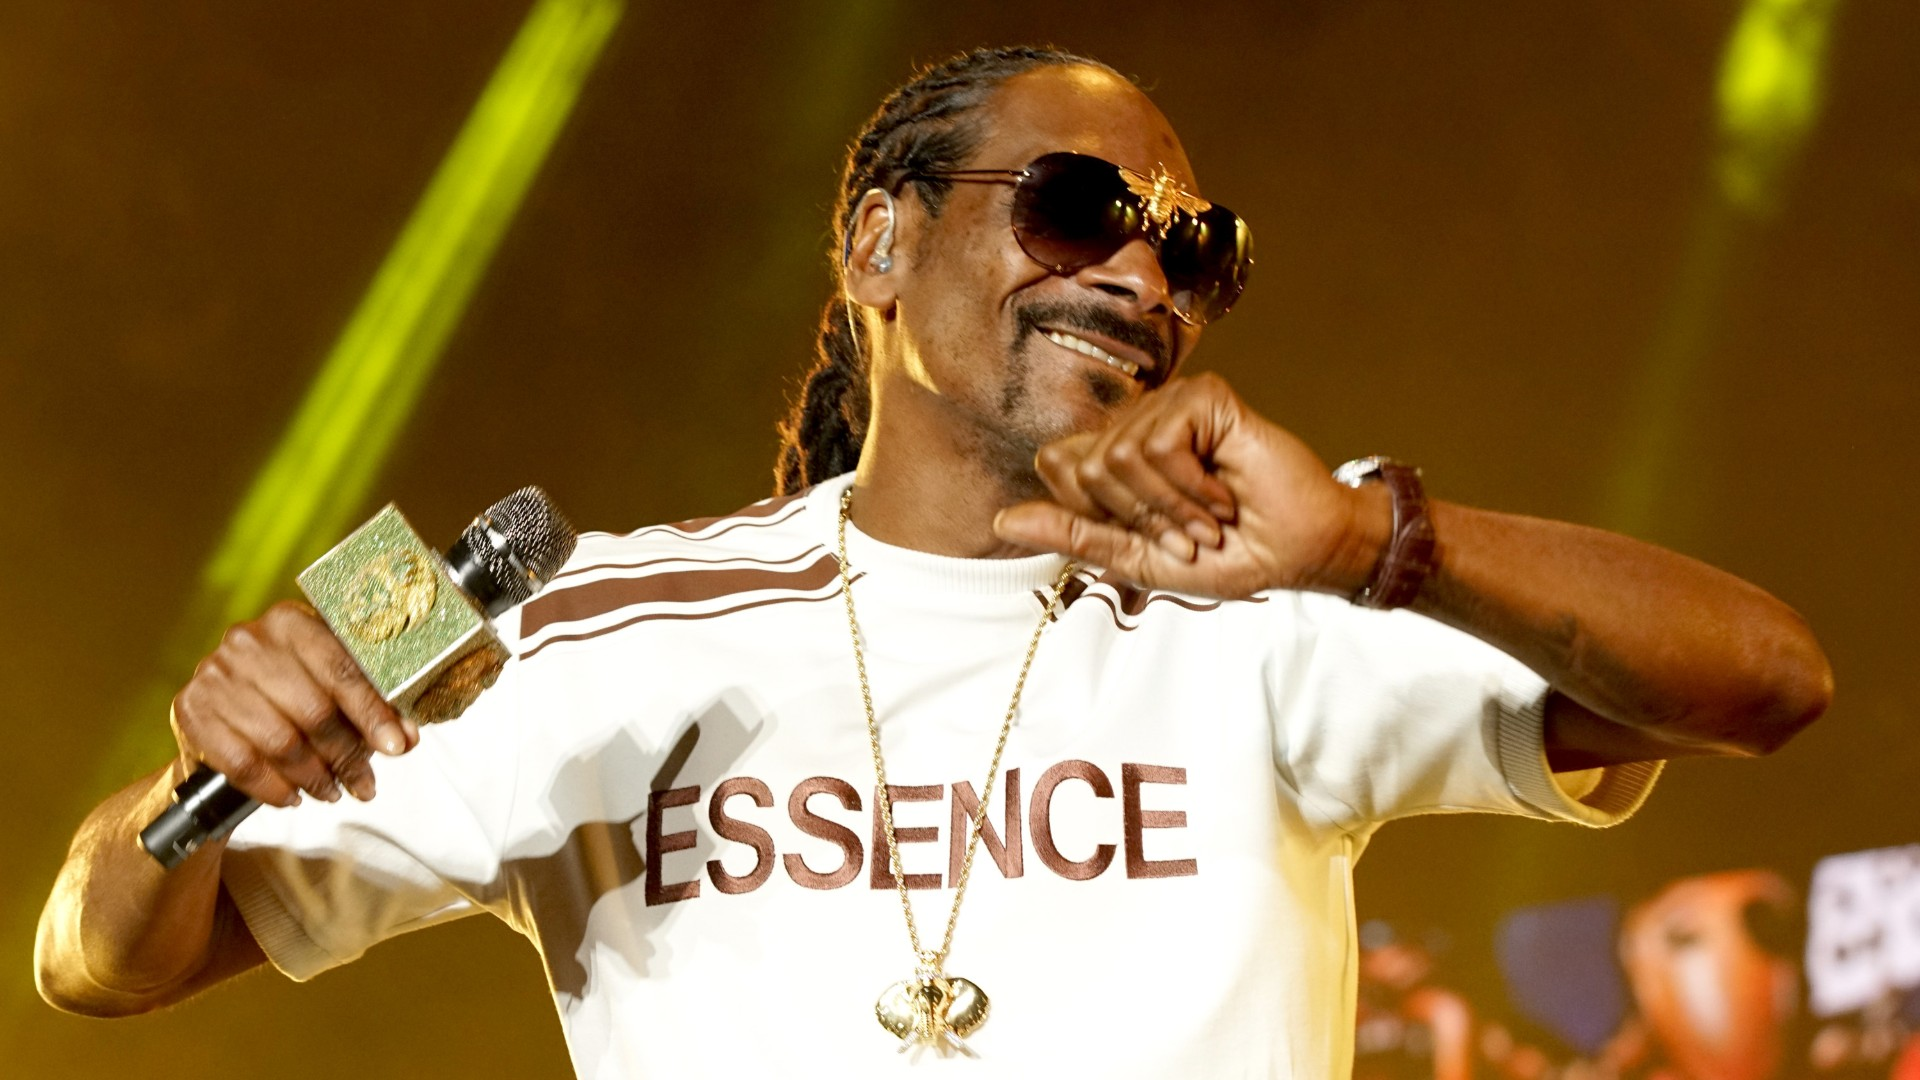 Snoop Dogg performs onstage during the 2018 Essence Festival presented By Coca-Cola on July 6, 2018 in New Orleans, Louisiana. (Bennett Raglin/Getty Images for Essence)